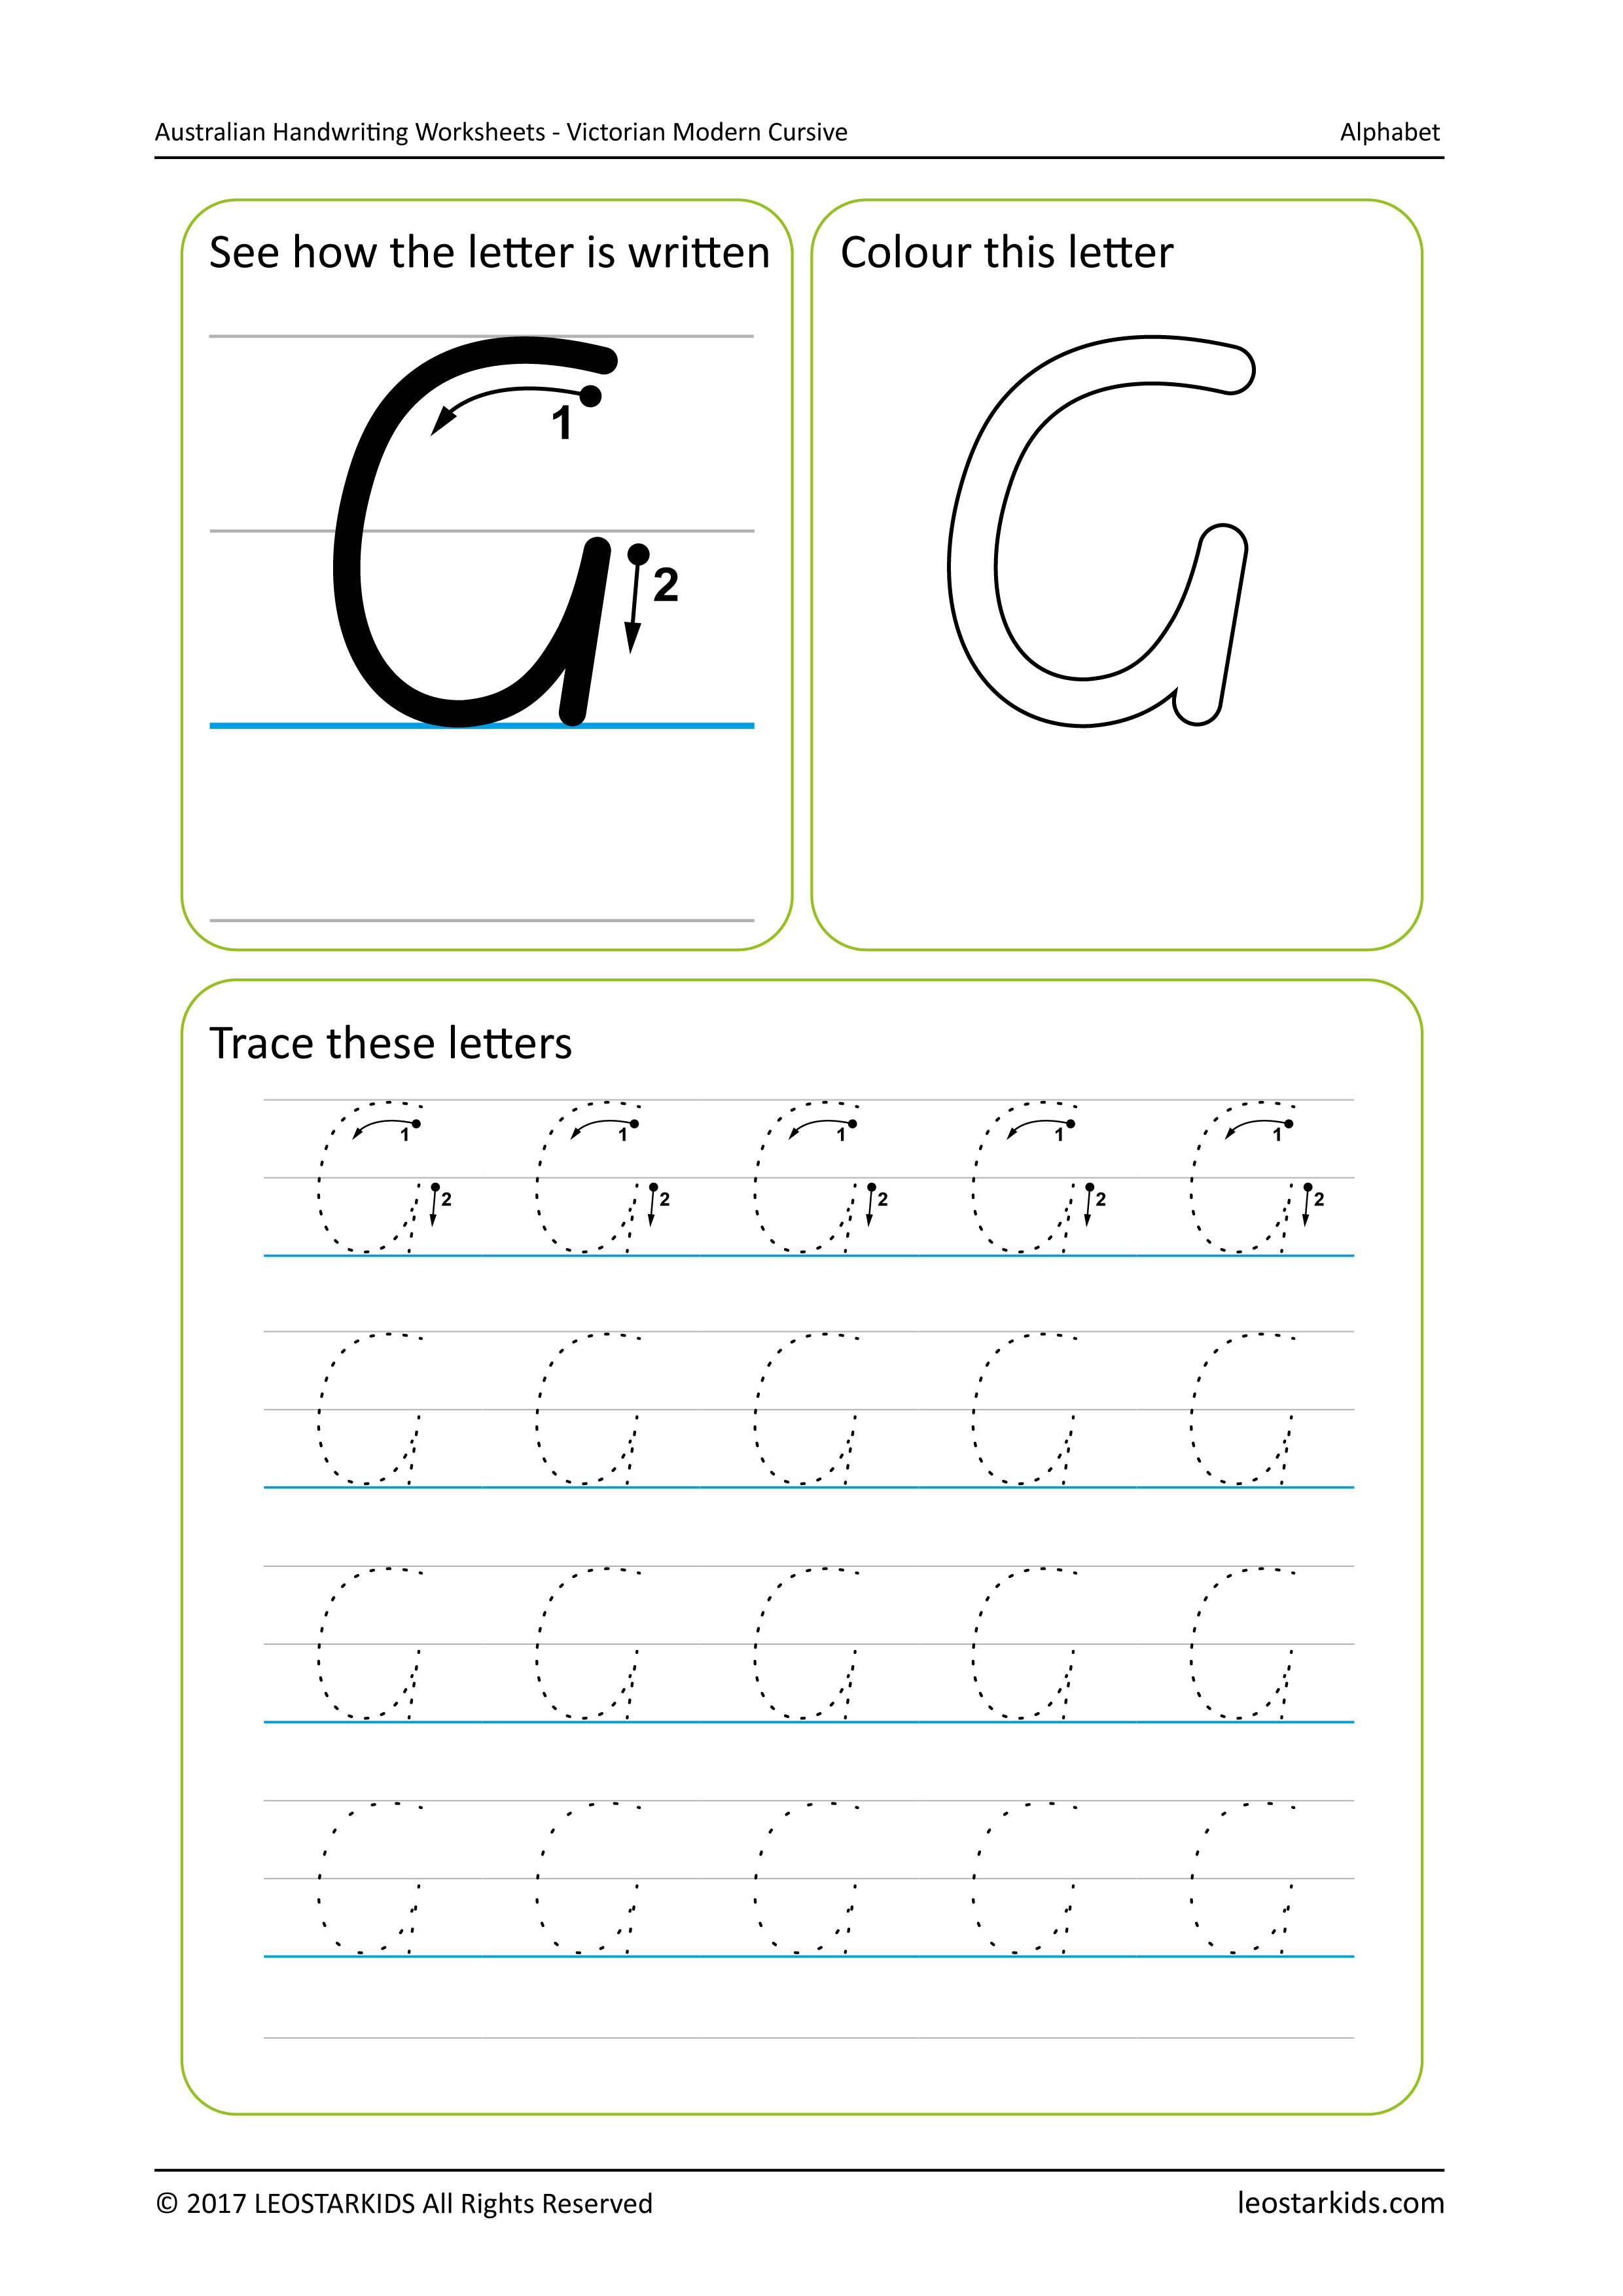 Australian Handwriting Worksheets - Victorian Modern Cursive within Name Tracing Victorian Modern Cursive